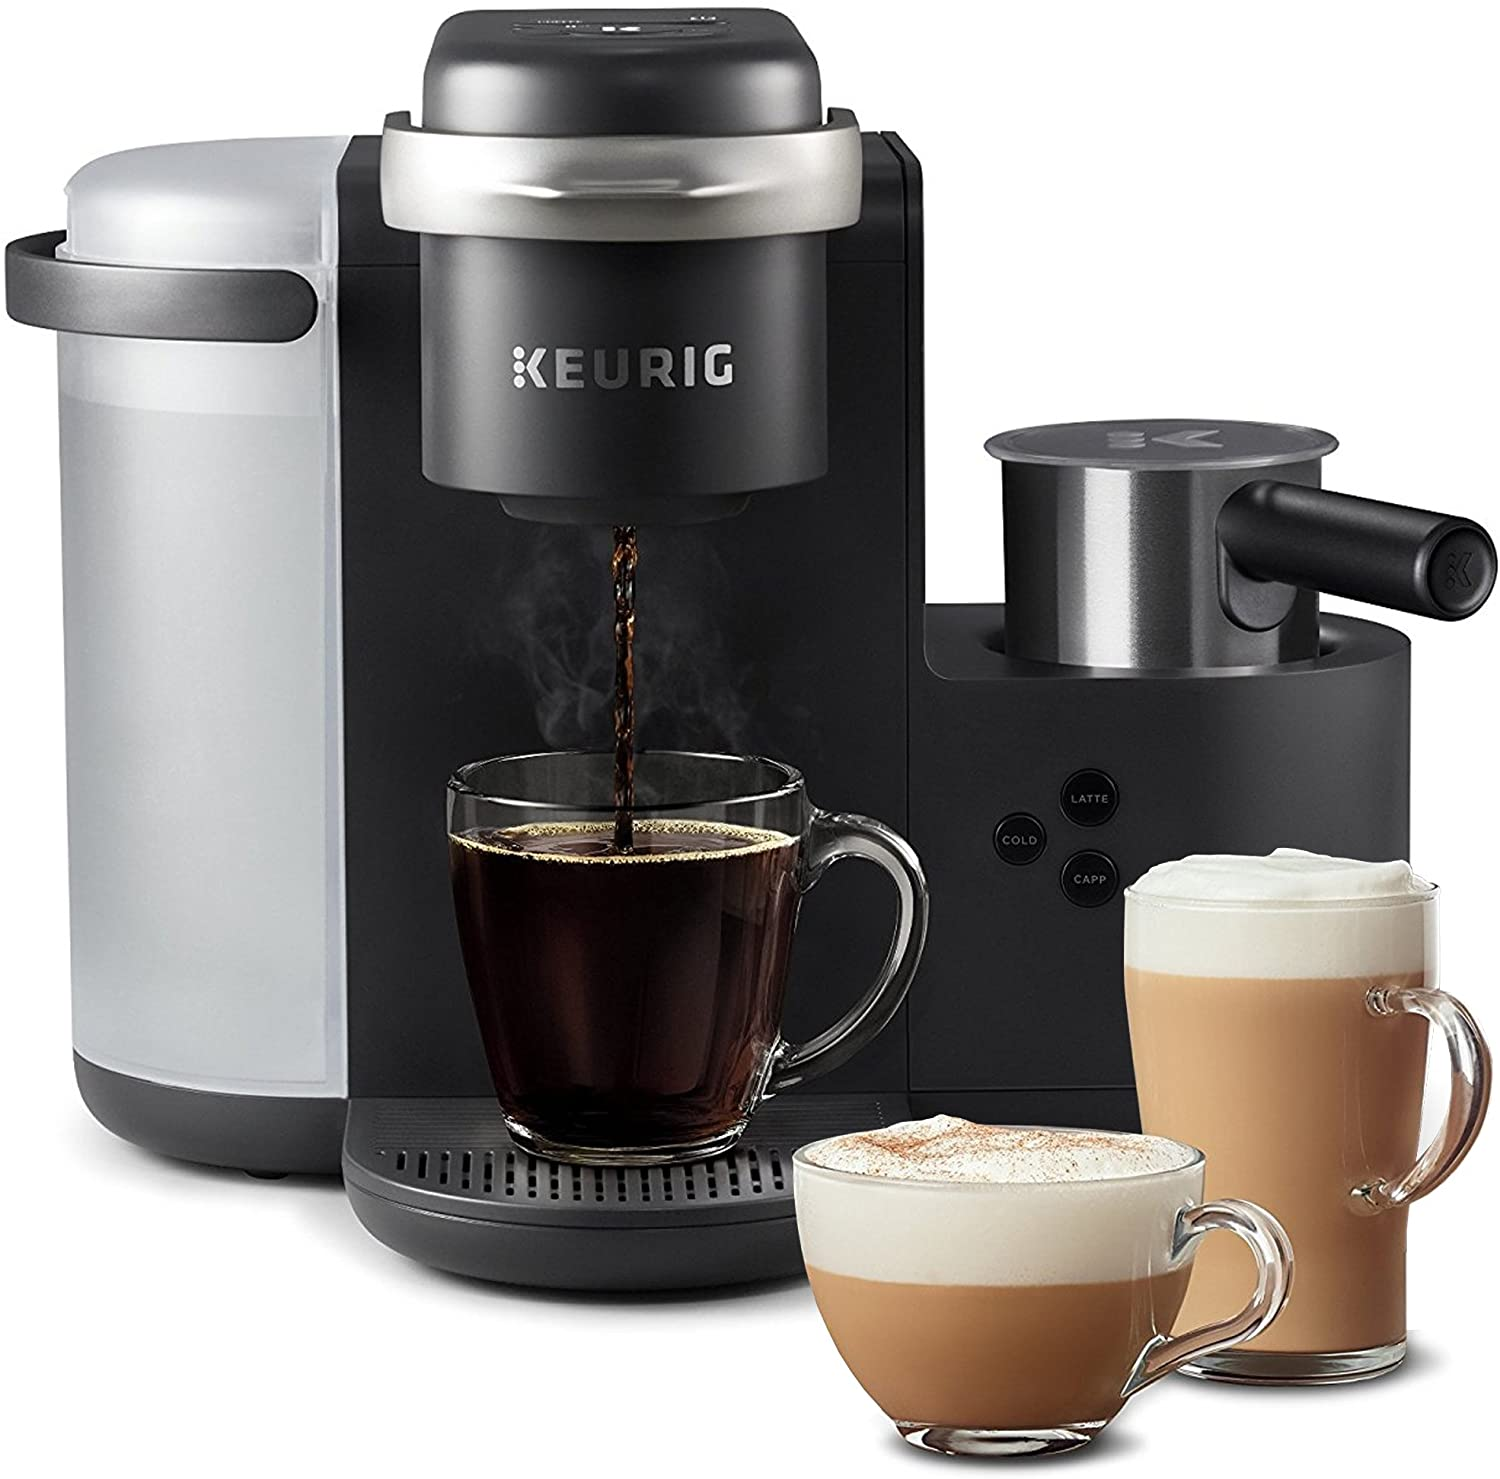 Household Gadgets: Daily Deals On Tech Every Home Needs - Keurig Coffee Maker